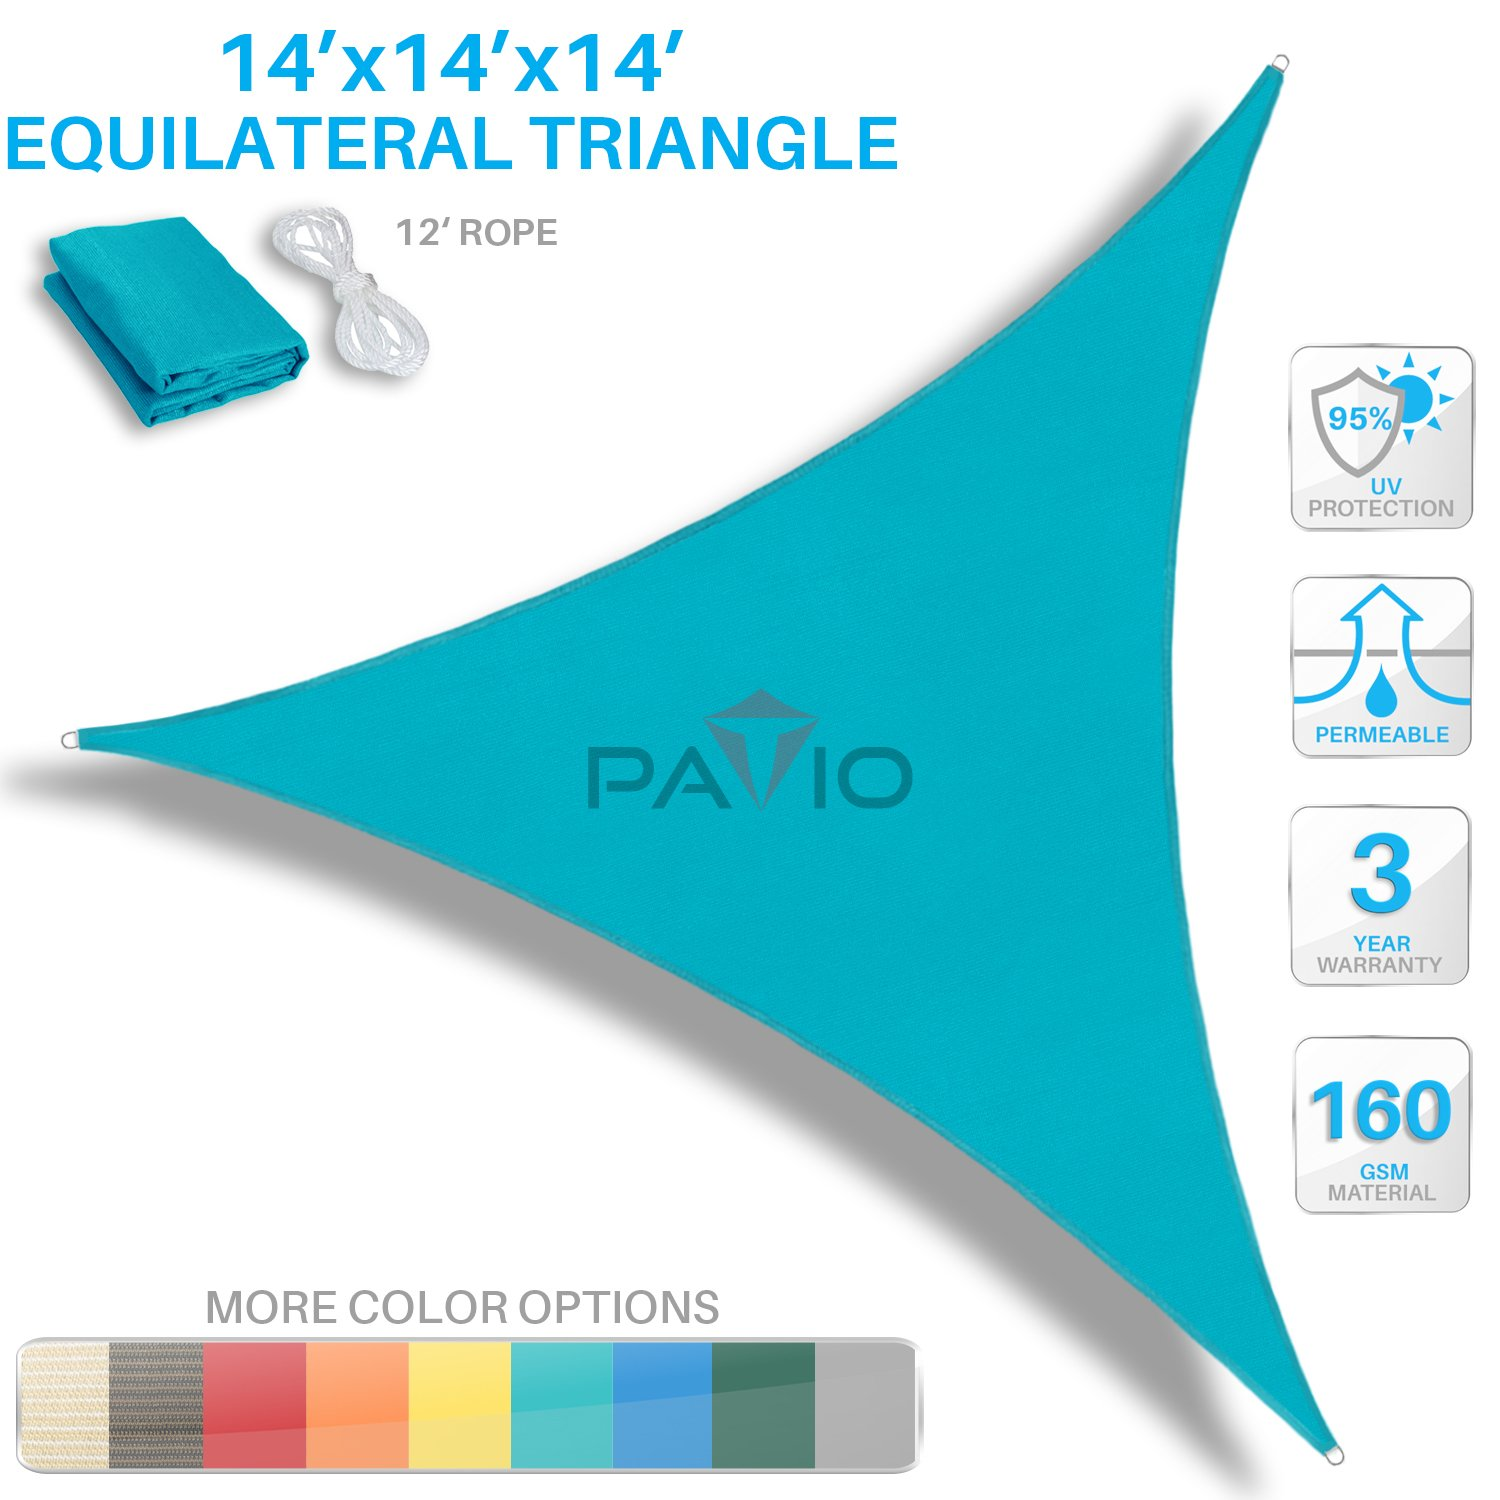 Patio Paradise 14' x 14' x 14' Turquoise Green Sun Shade Sail Equilateral Triangle Canopy - Permeable UV Block Fabric Durable Outdoor - Customized Available